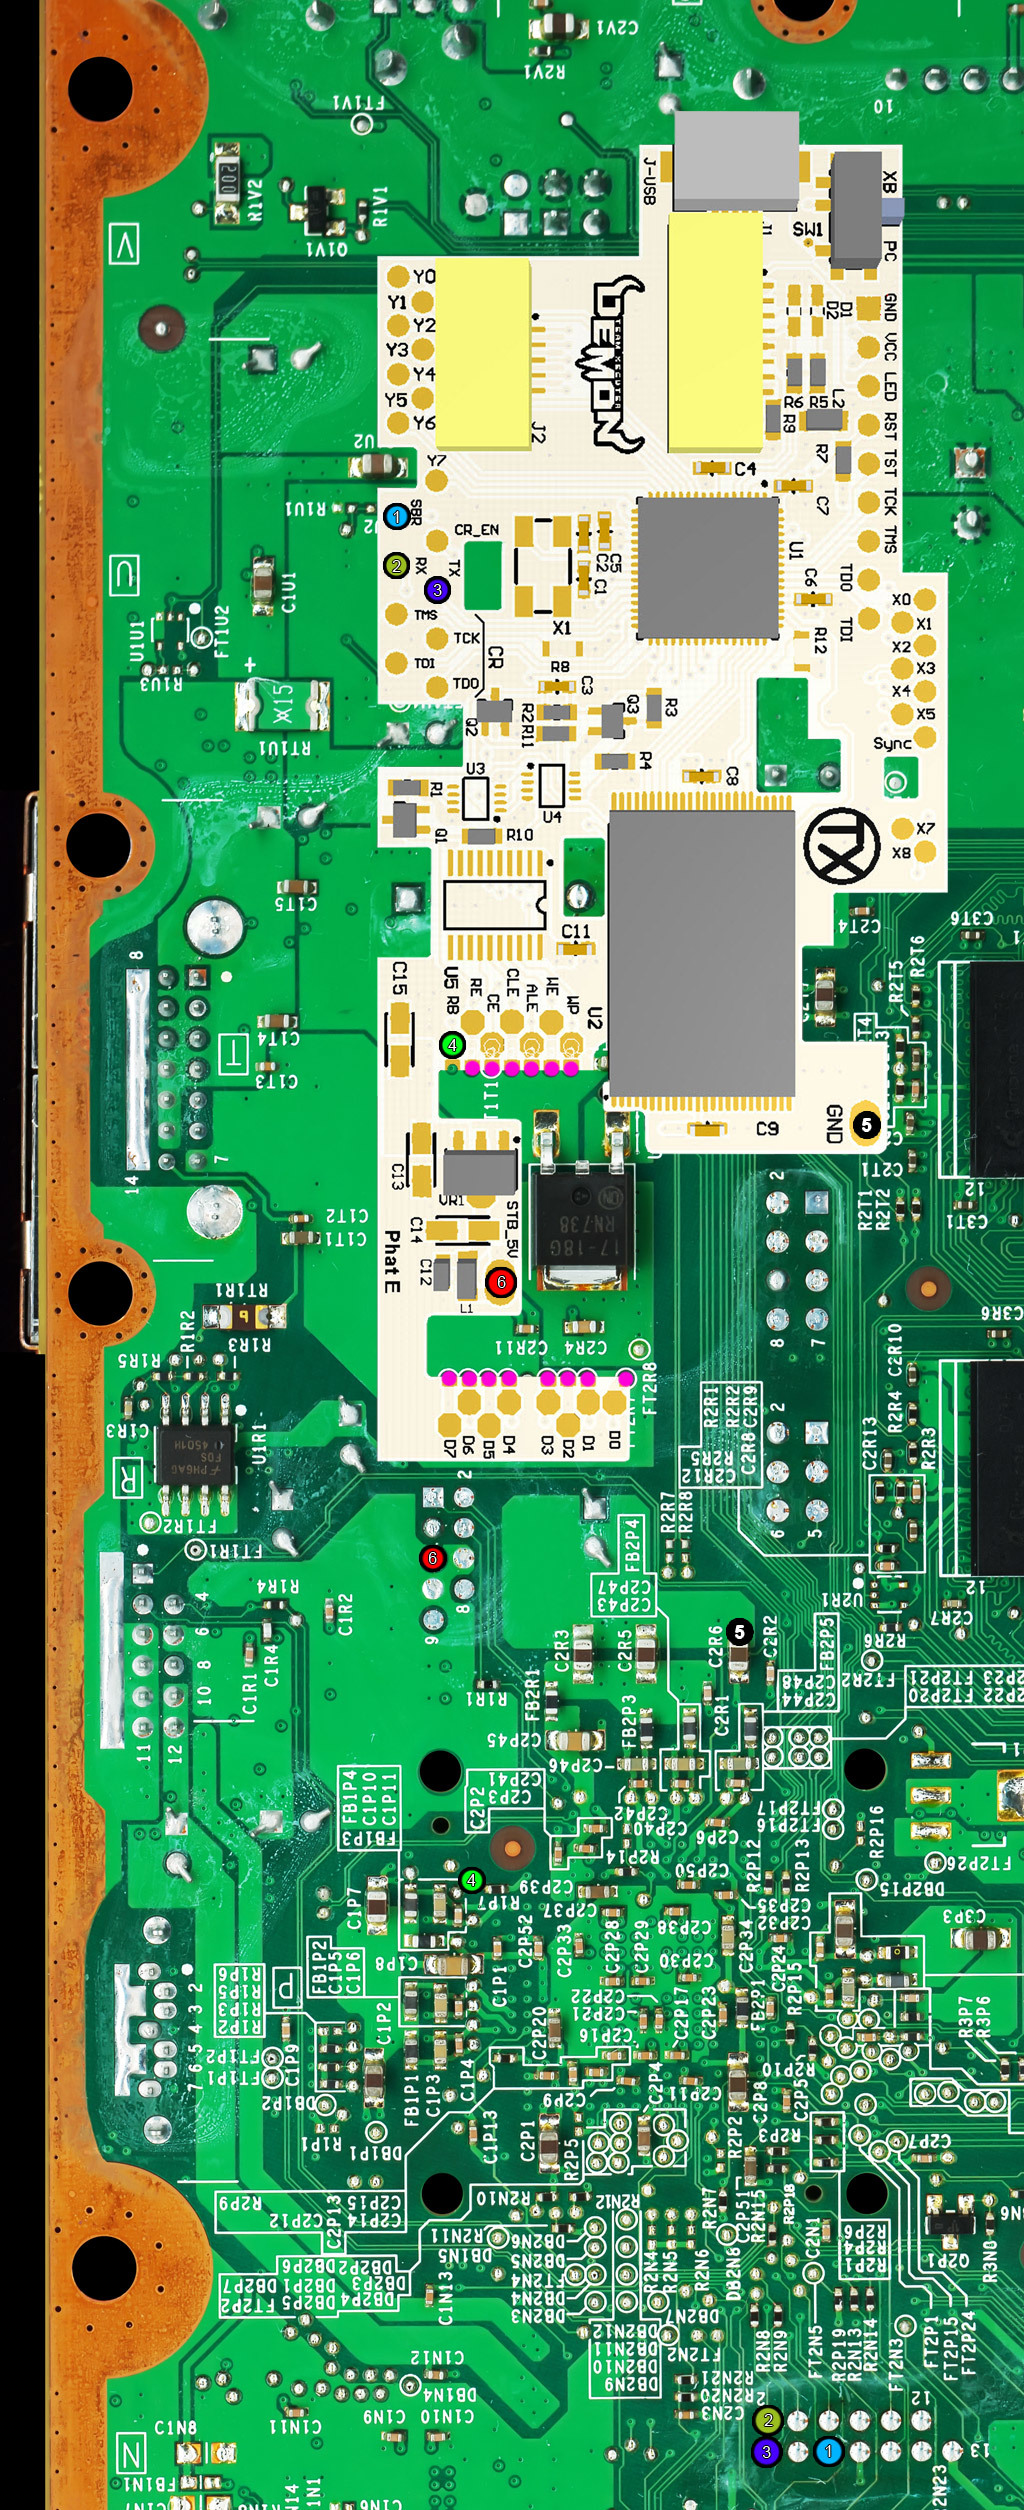 How to install a DemoN dual NAND chip into a Phat or Slim Xbox 360